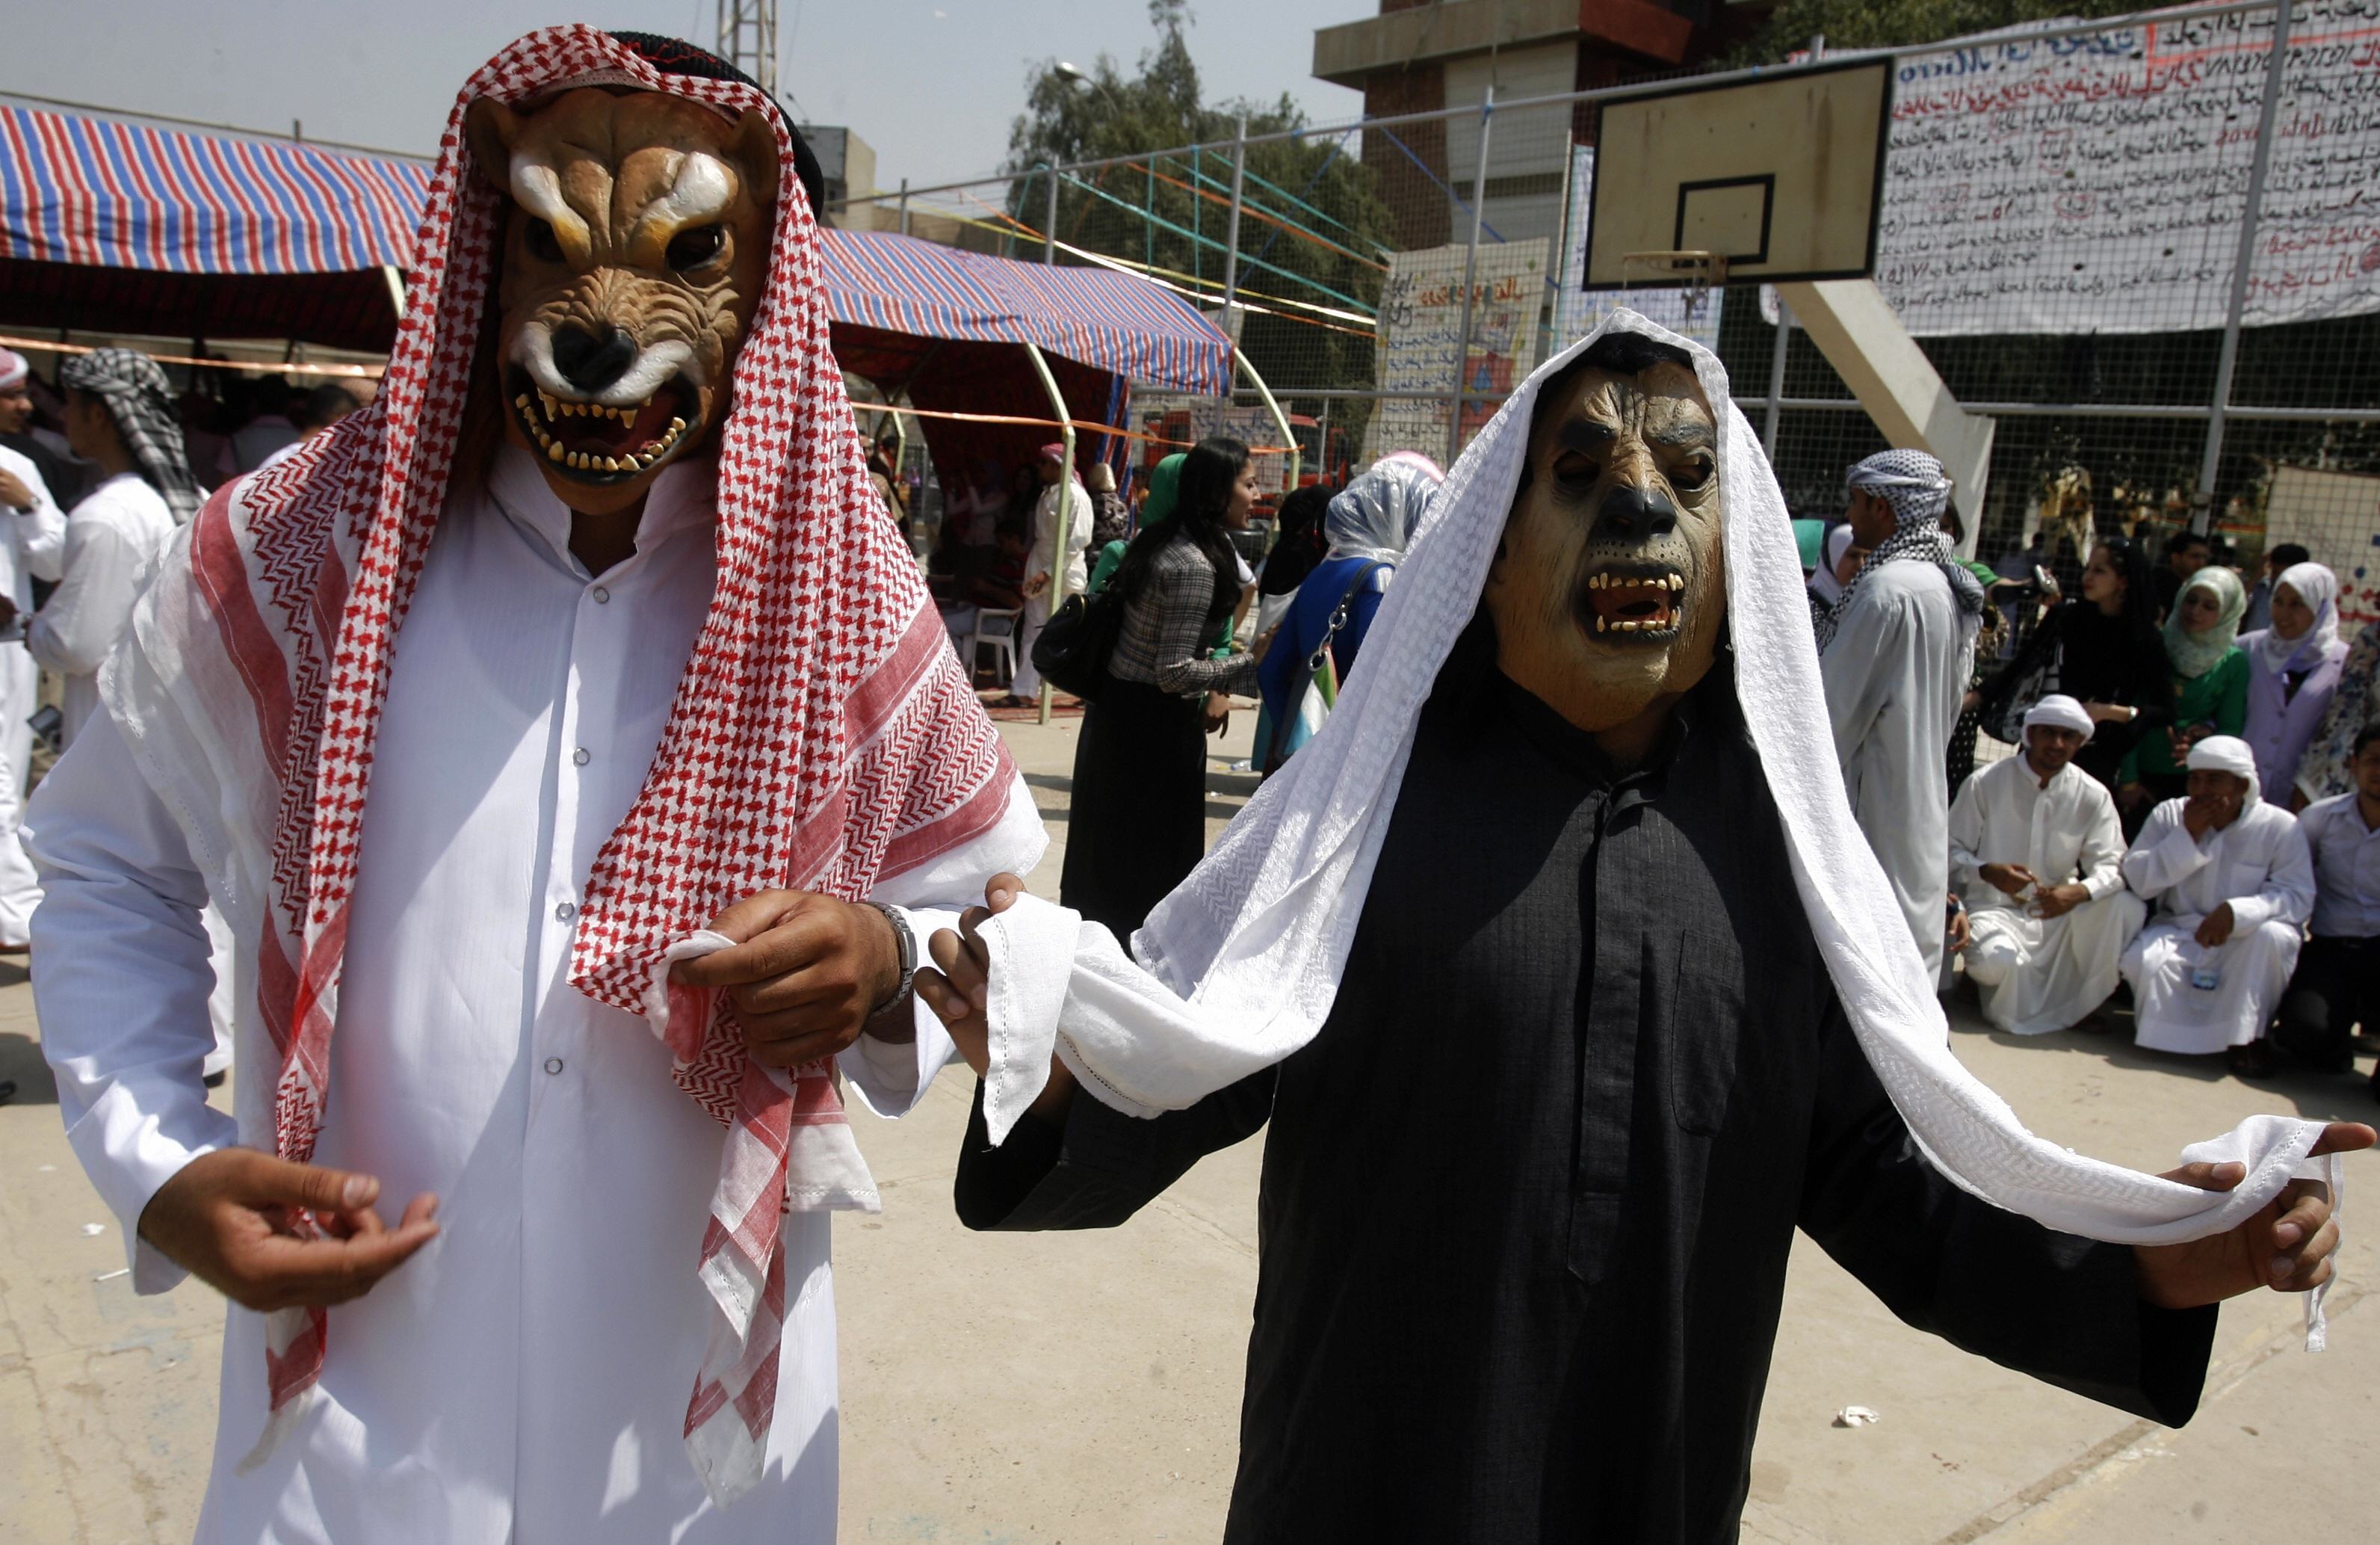 ATRICK BAZ/AFP/Getty Images. Iraqi students wearing masks take part in a graduation party at the Baghdad IT and Technology University as they celebrate on April 06, 2009.